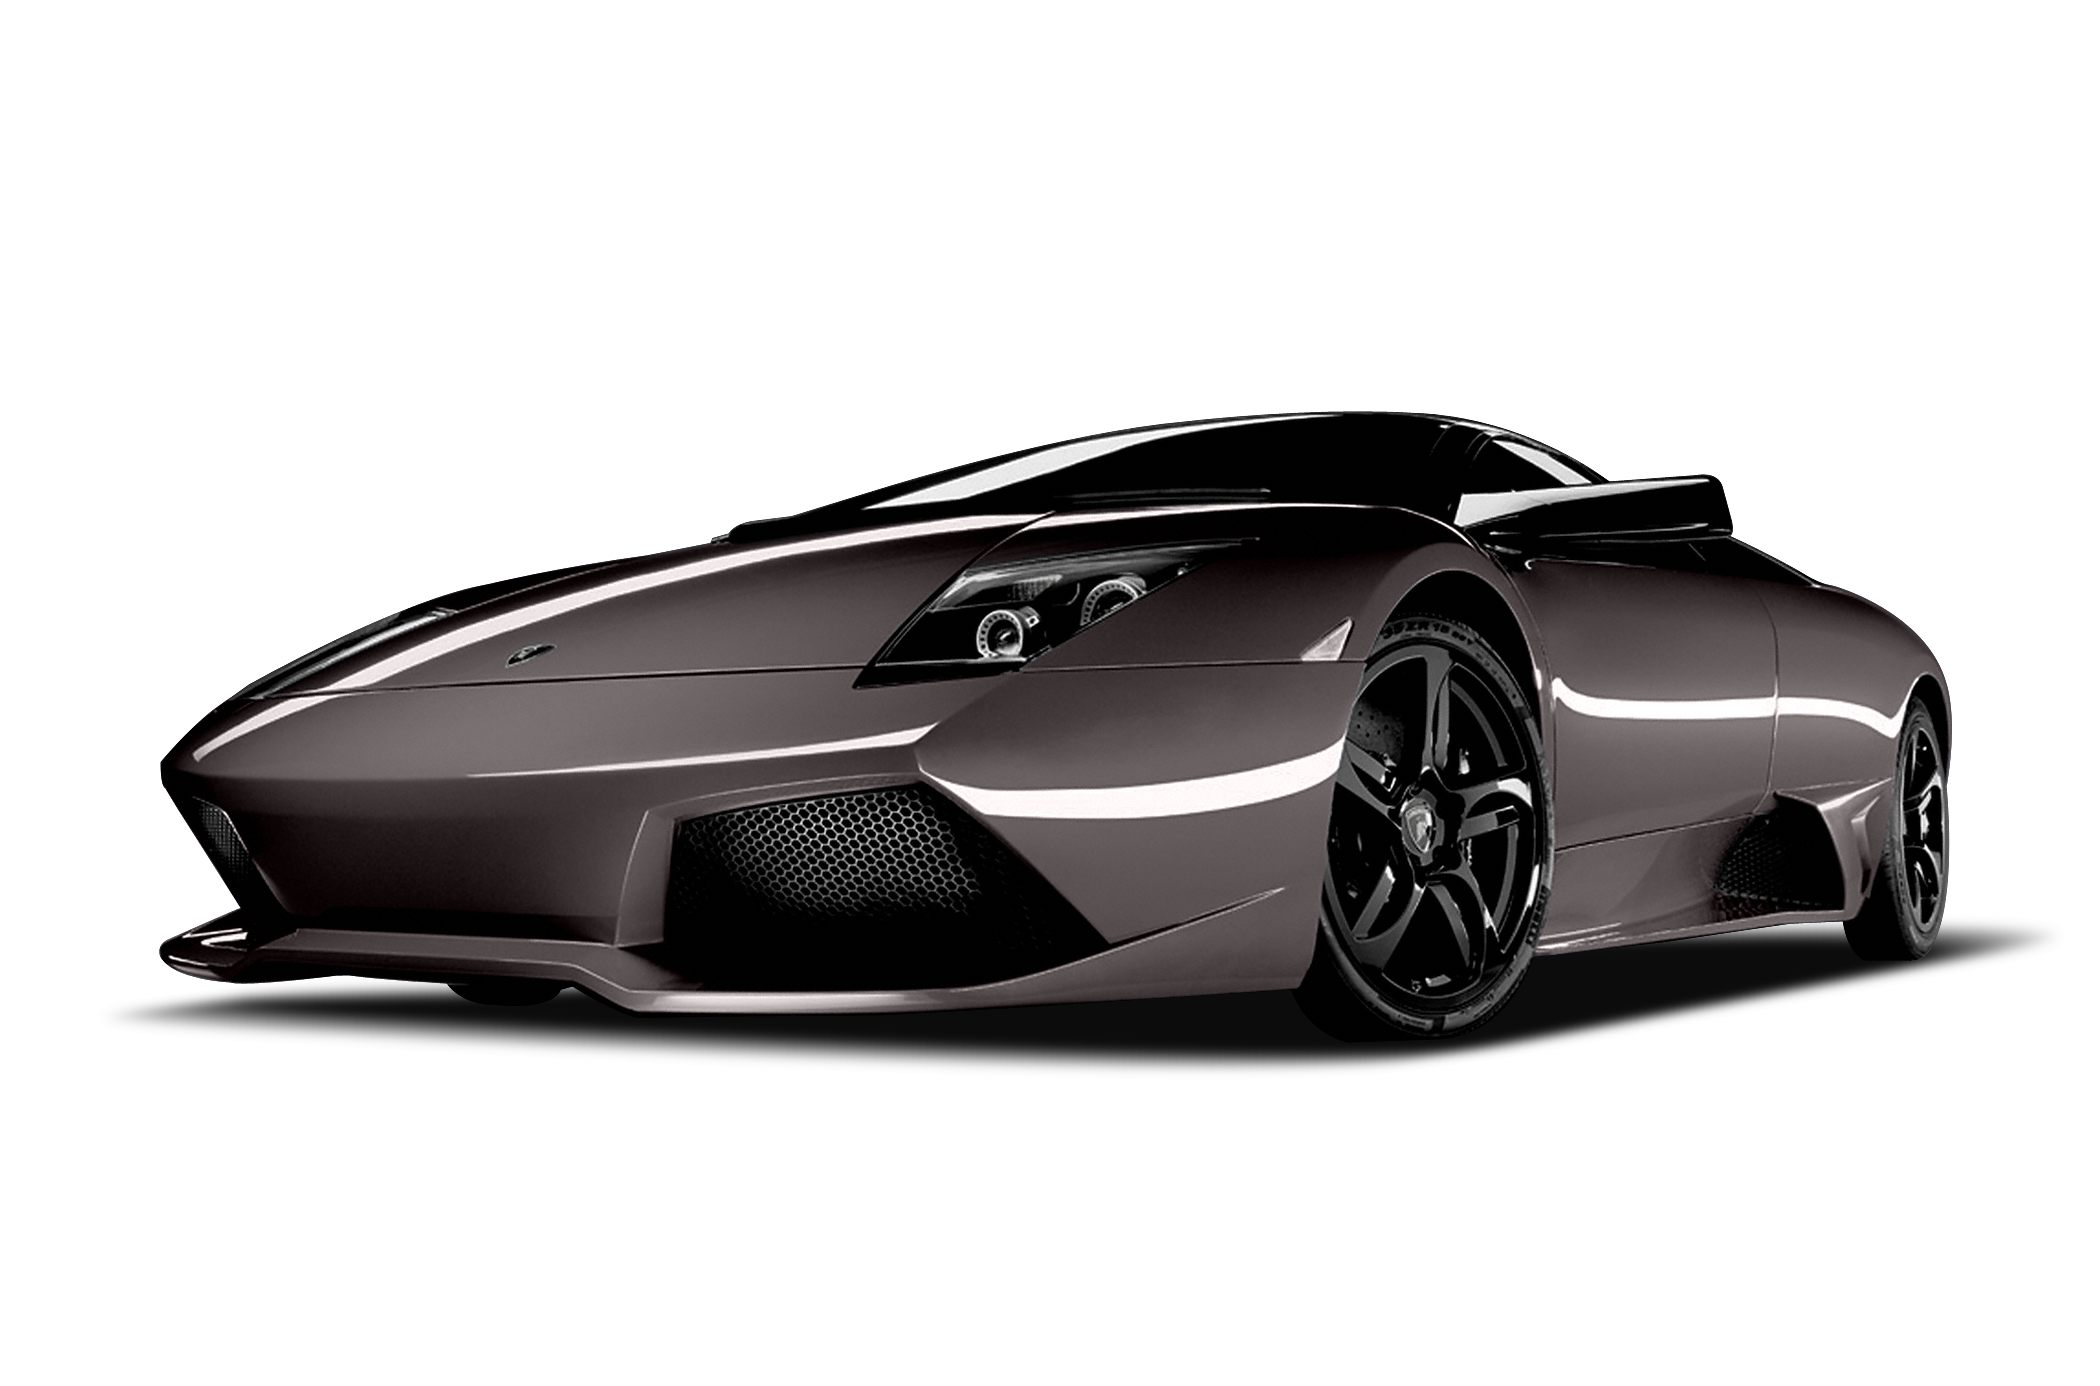 2010 Lamborghini Murcielago